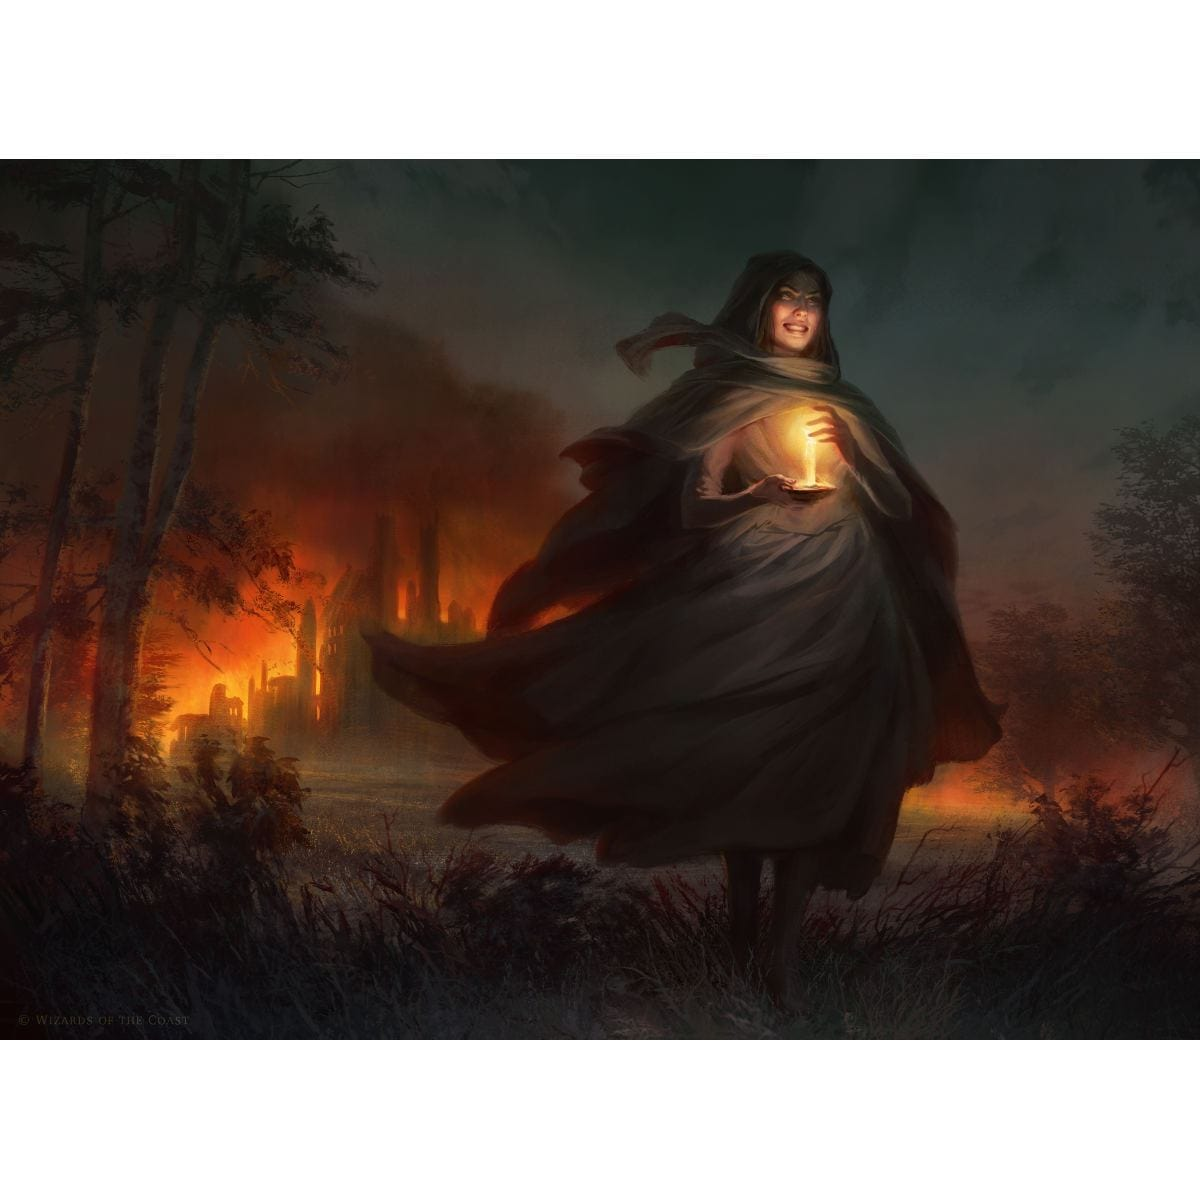 Past in Flames Print - Print - Original Magic Art - Accessories for Magic the Gathering and other card games